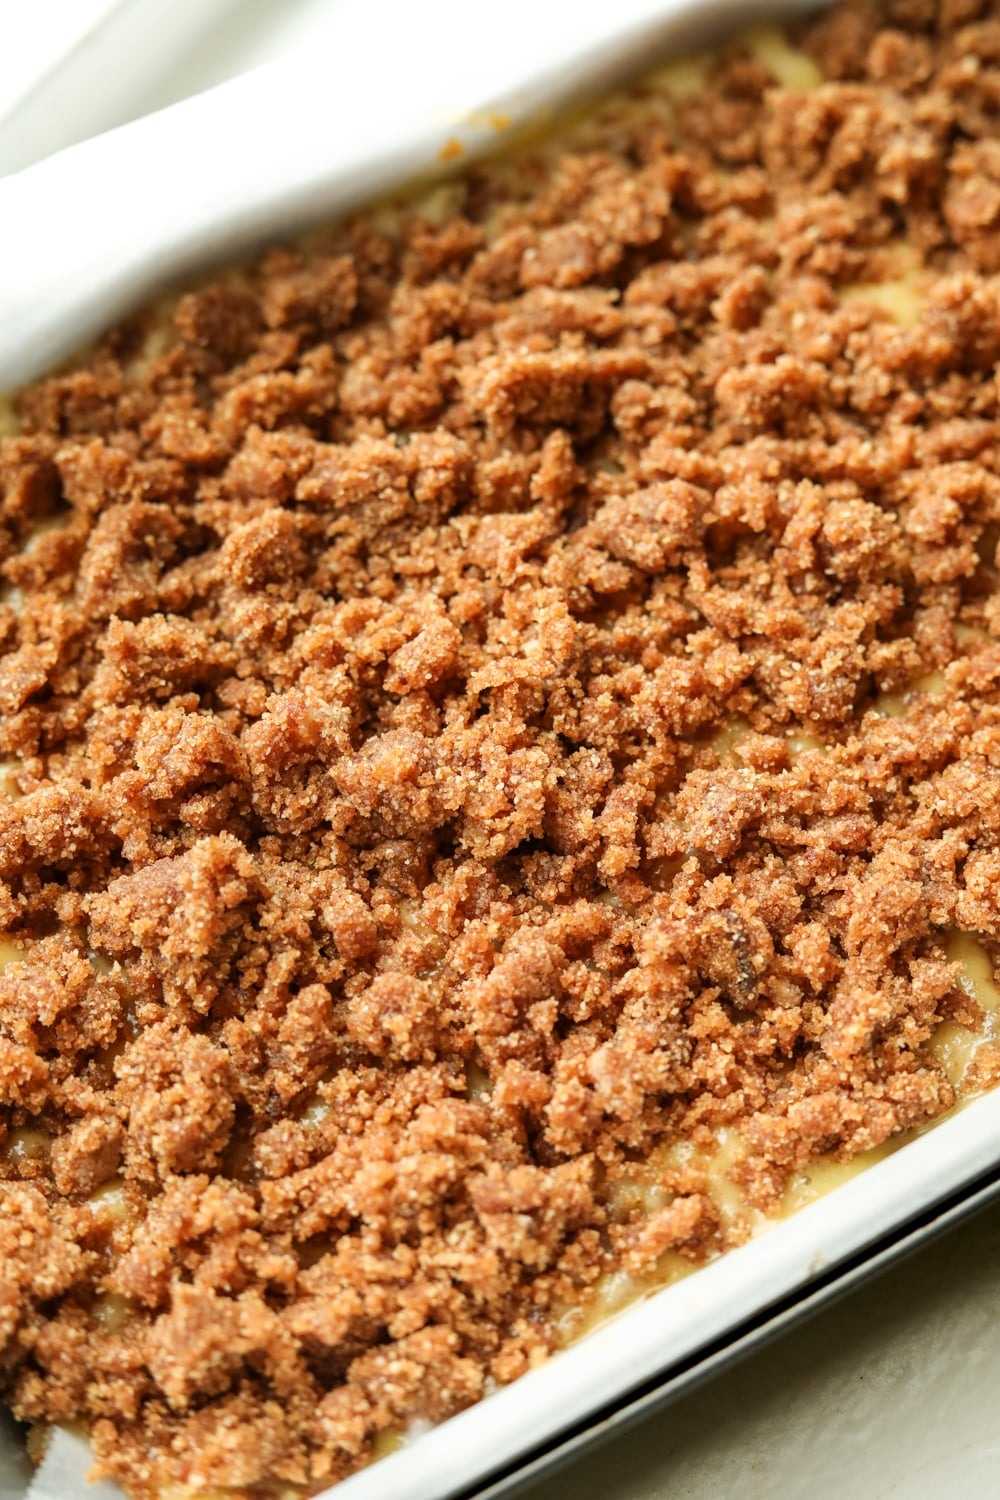 A cake tray filled with cake batter and a crumble topping.